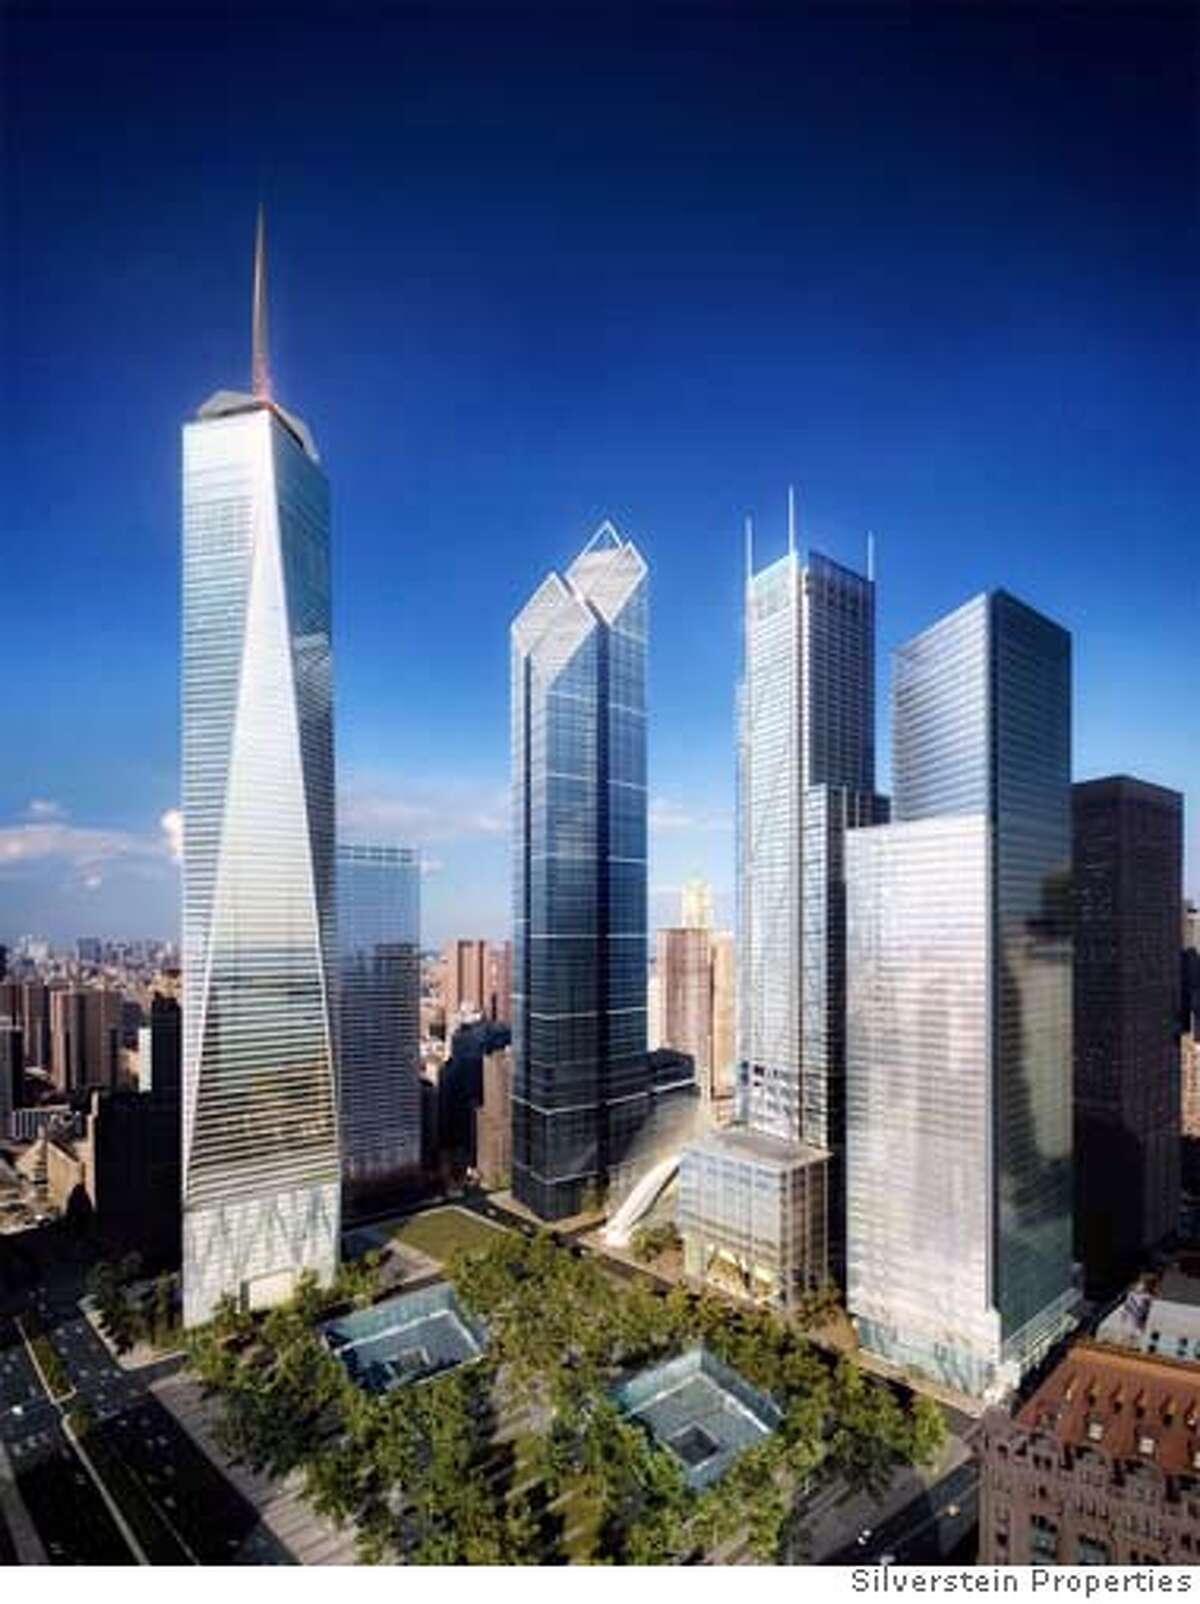 (NYT6) UNDATED -- Sept. 7, 2006 -- WTC-TOWERS-2 -- The developer of the new World Trade Center unveiled Thursday, Sept. 7, 2006, the design for three skyscrapers at ground zero, which in their gargantuan scale would reshape the New York skyline. The Freedom Tower is to the left of Towers 2, 3 and 4. The original footprint of the World Trade Center is at bottom. (Silverstein Properties via The New York Times) - EDITORIAL USE ONLY Ran on: 09-08-2006 Artist Mary Perillo lives in the closest apartment building to ground zero; it took almost 18 months of repairs to get the apartment back to normal.